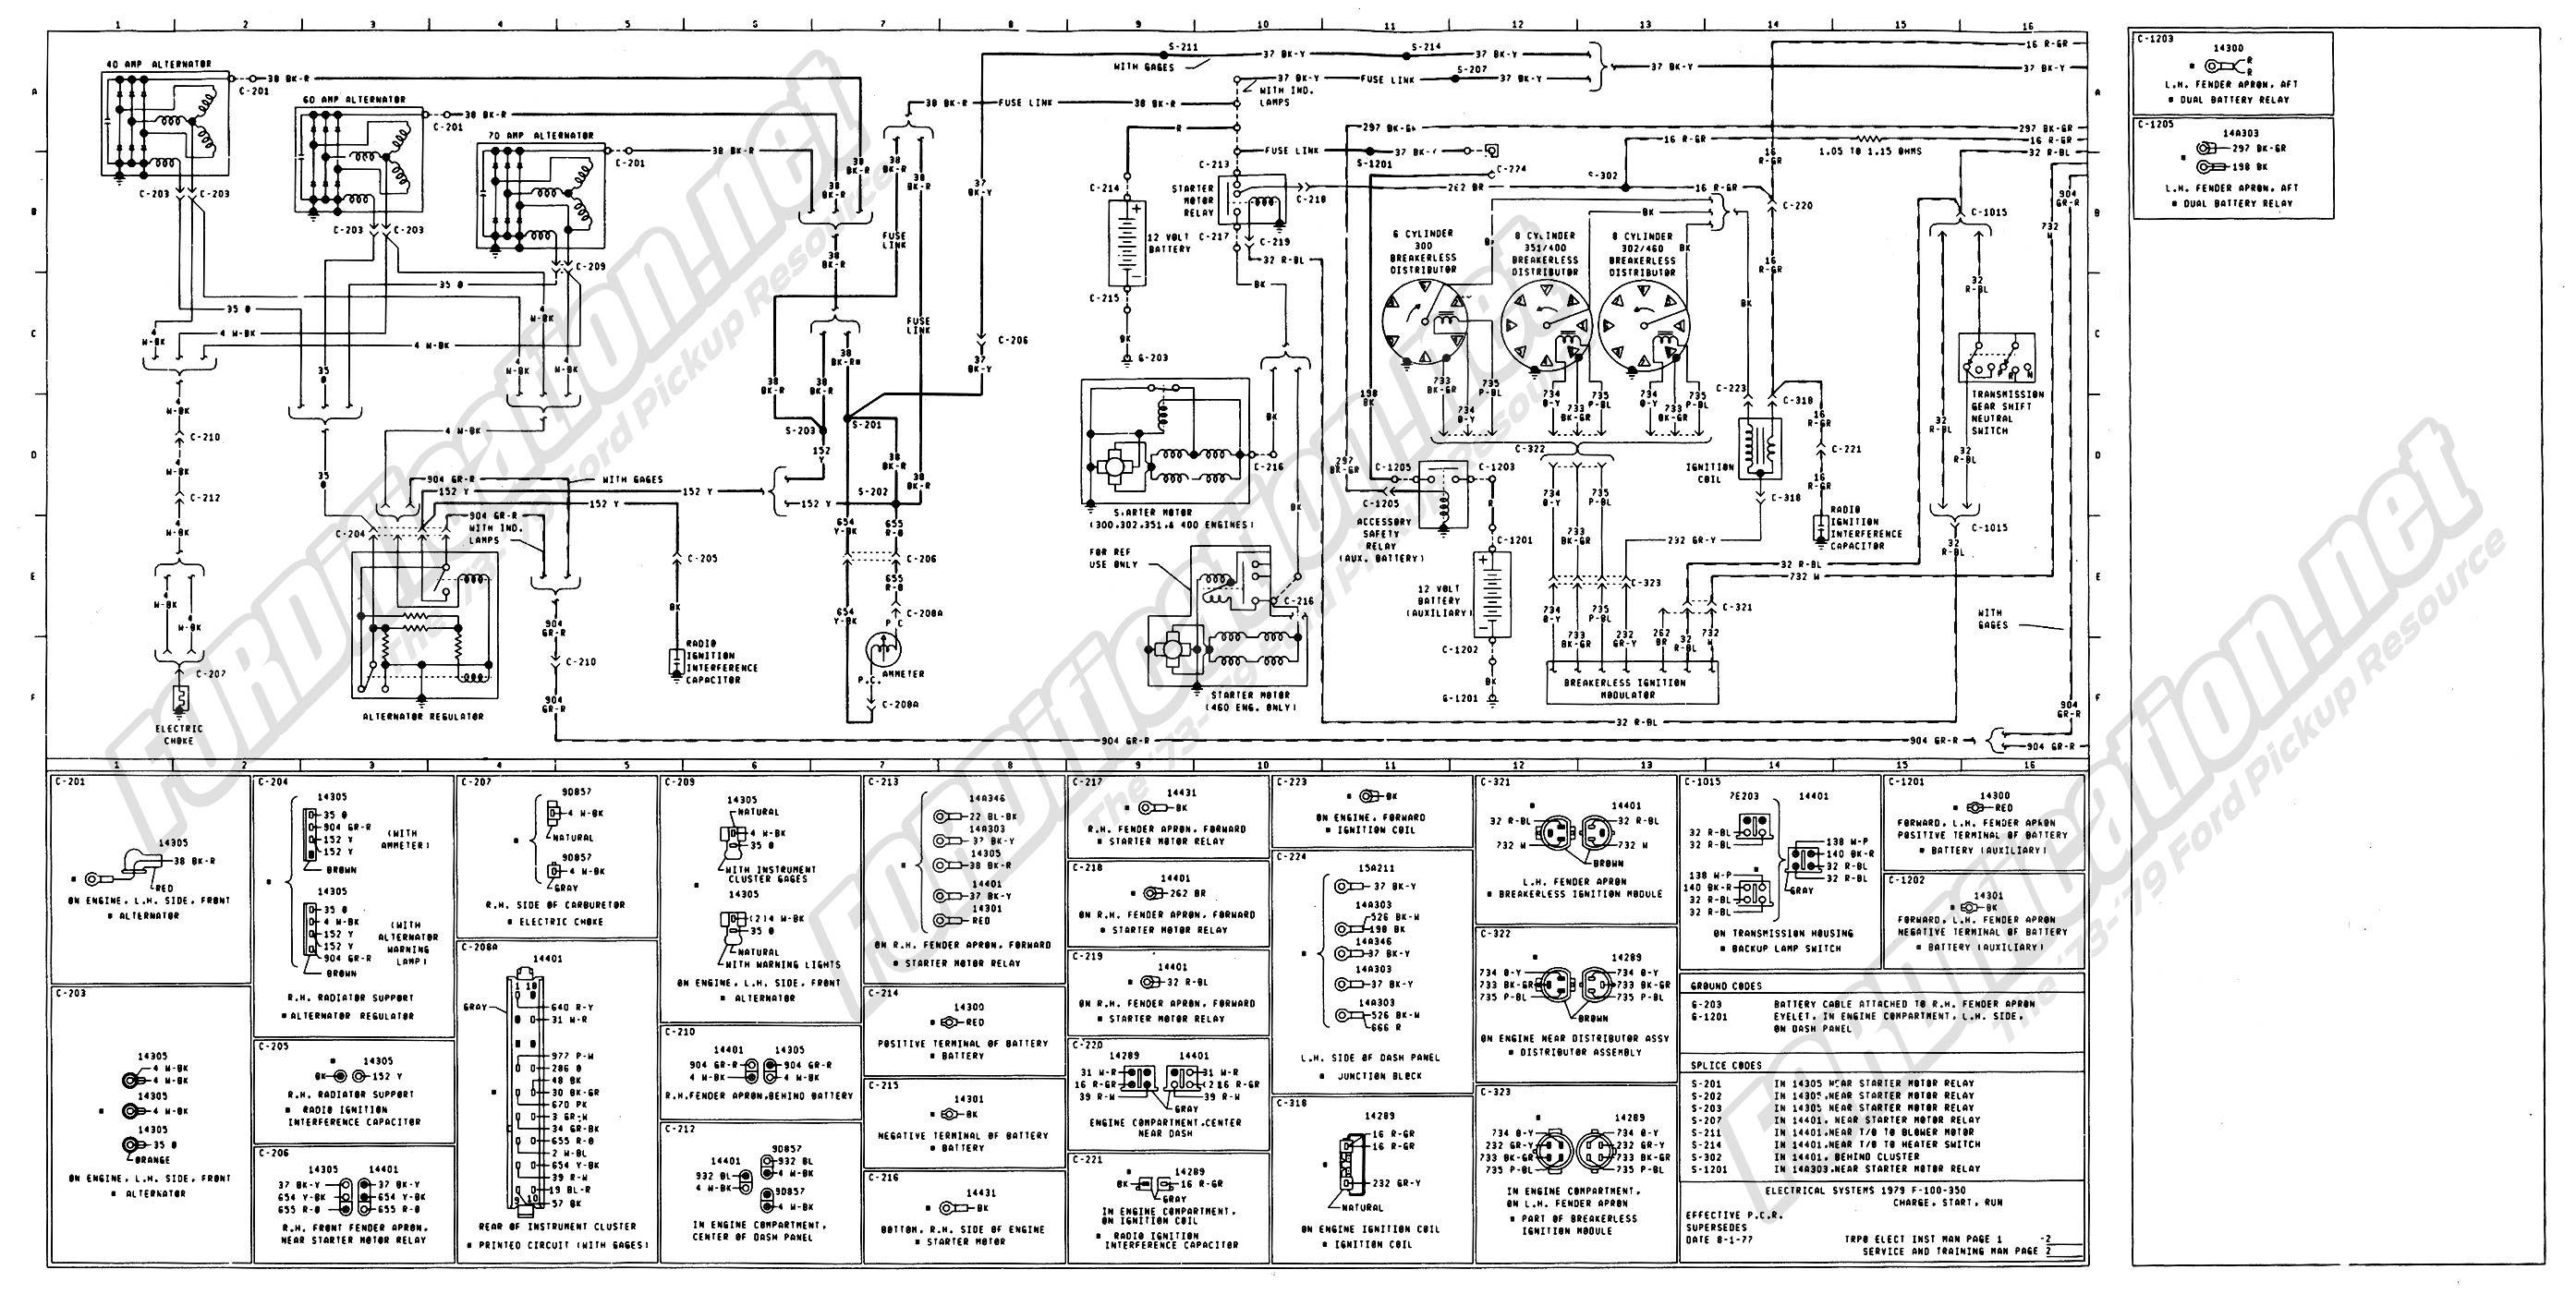 taco wiring diagrams f100 v8 simple wiring diagram rh david huggett co uk